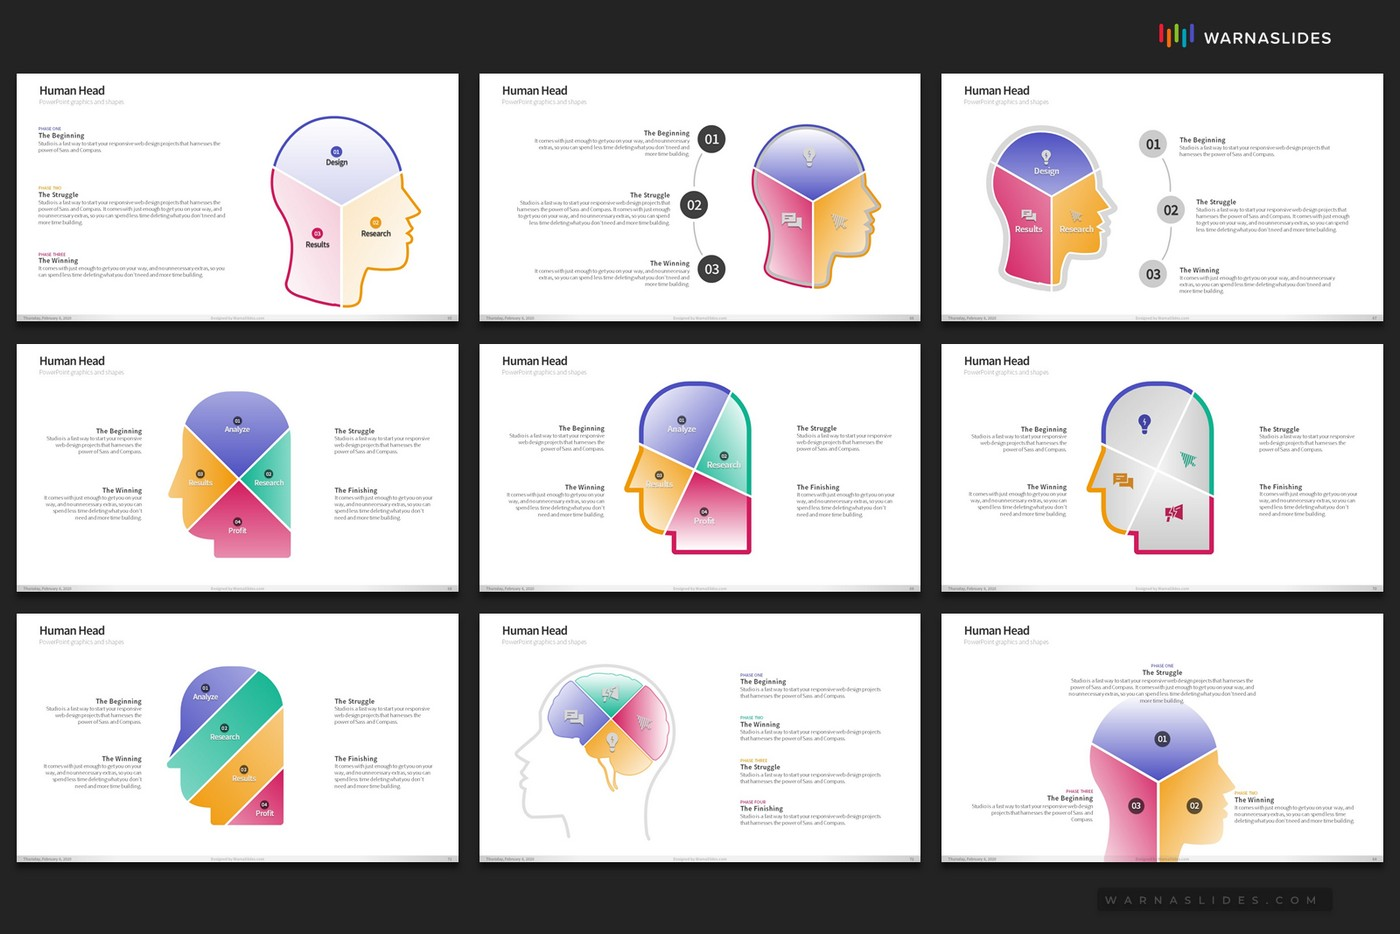 Human-Head-Ideas-Brainstorm-PowerPoint-Template-for-Business-Pitch-Deck-Professional-Creative-PowerPoint-Icons-014